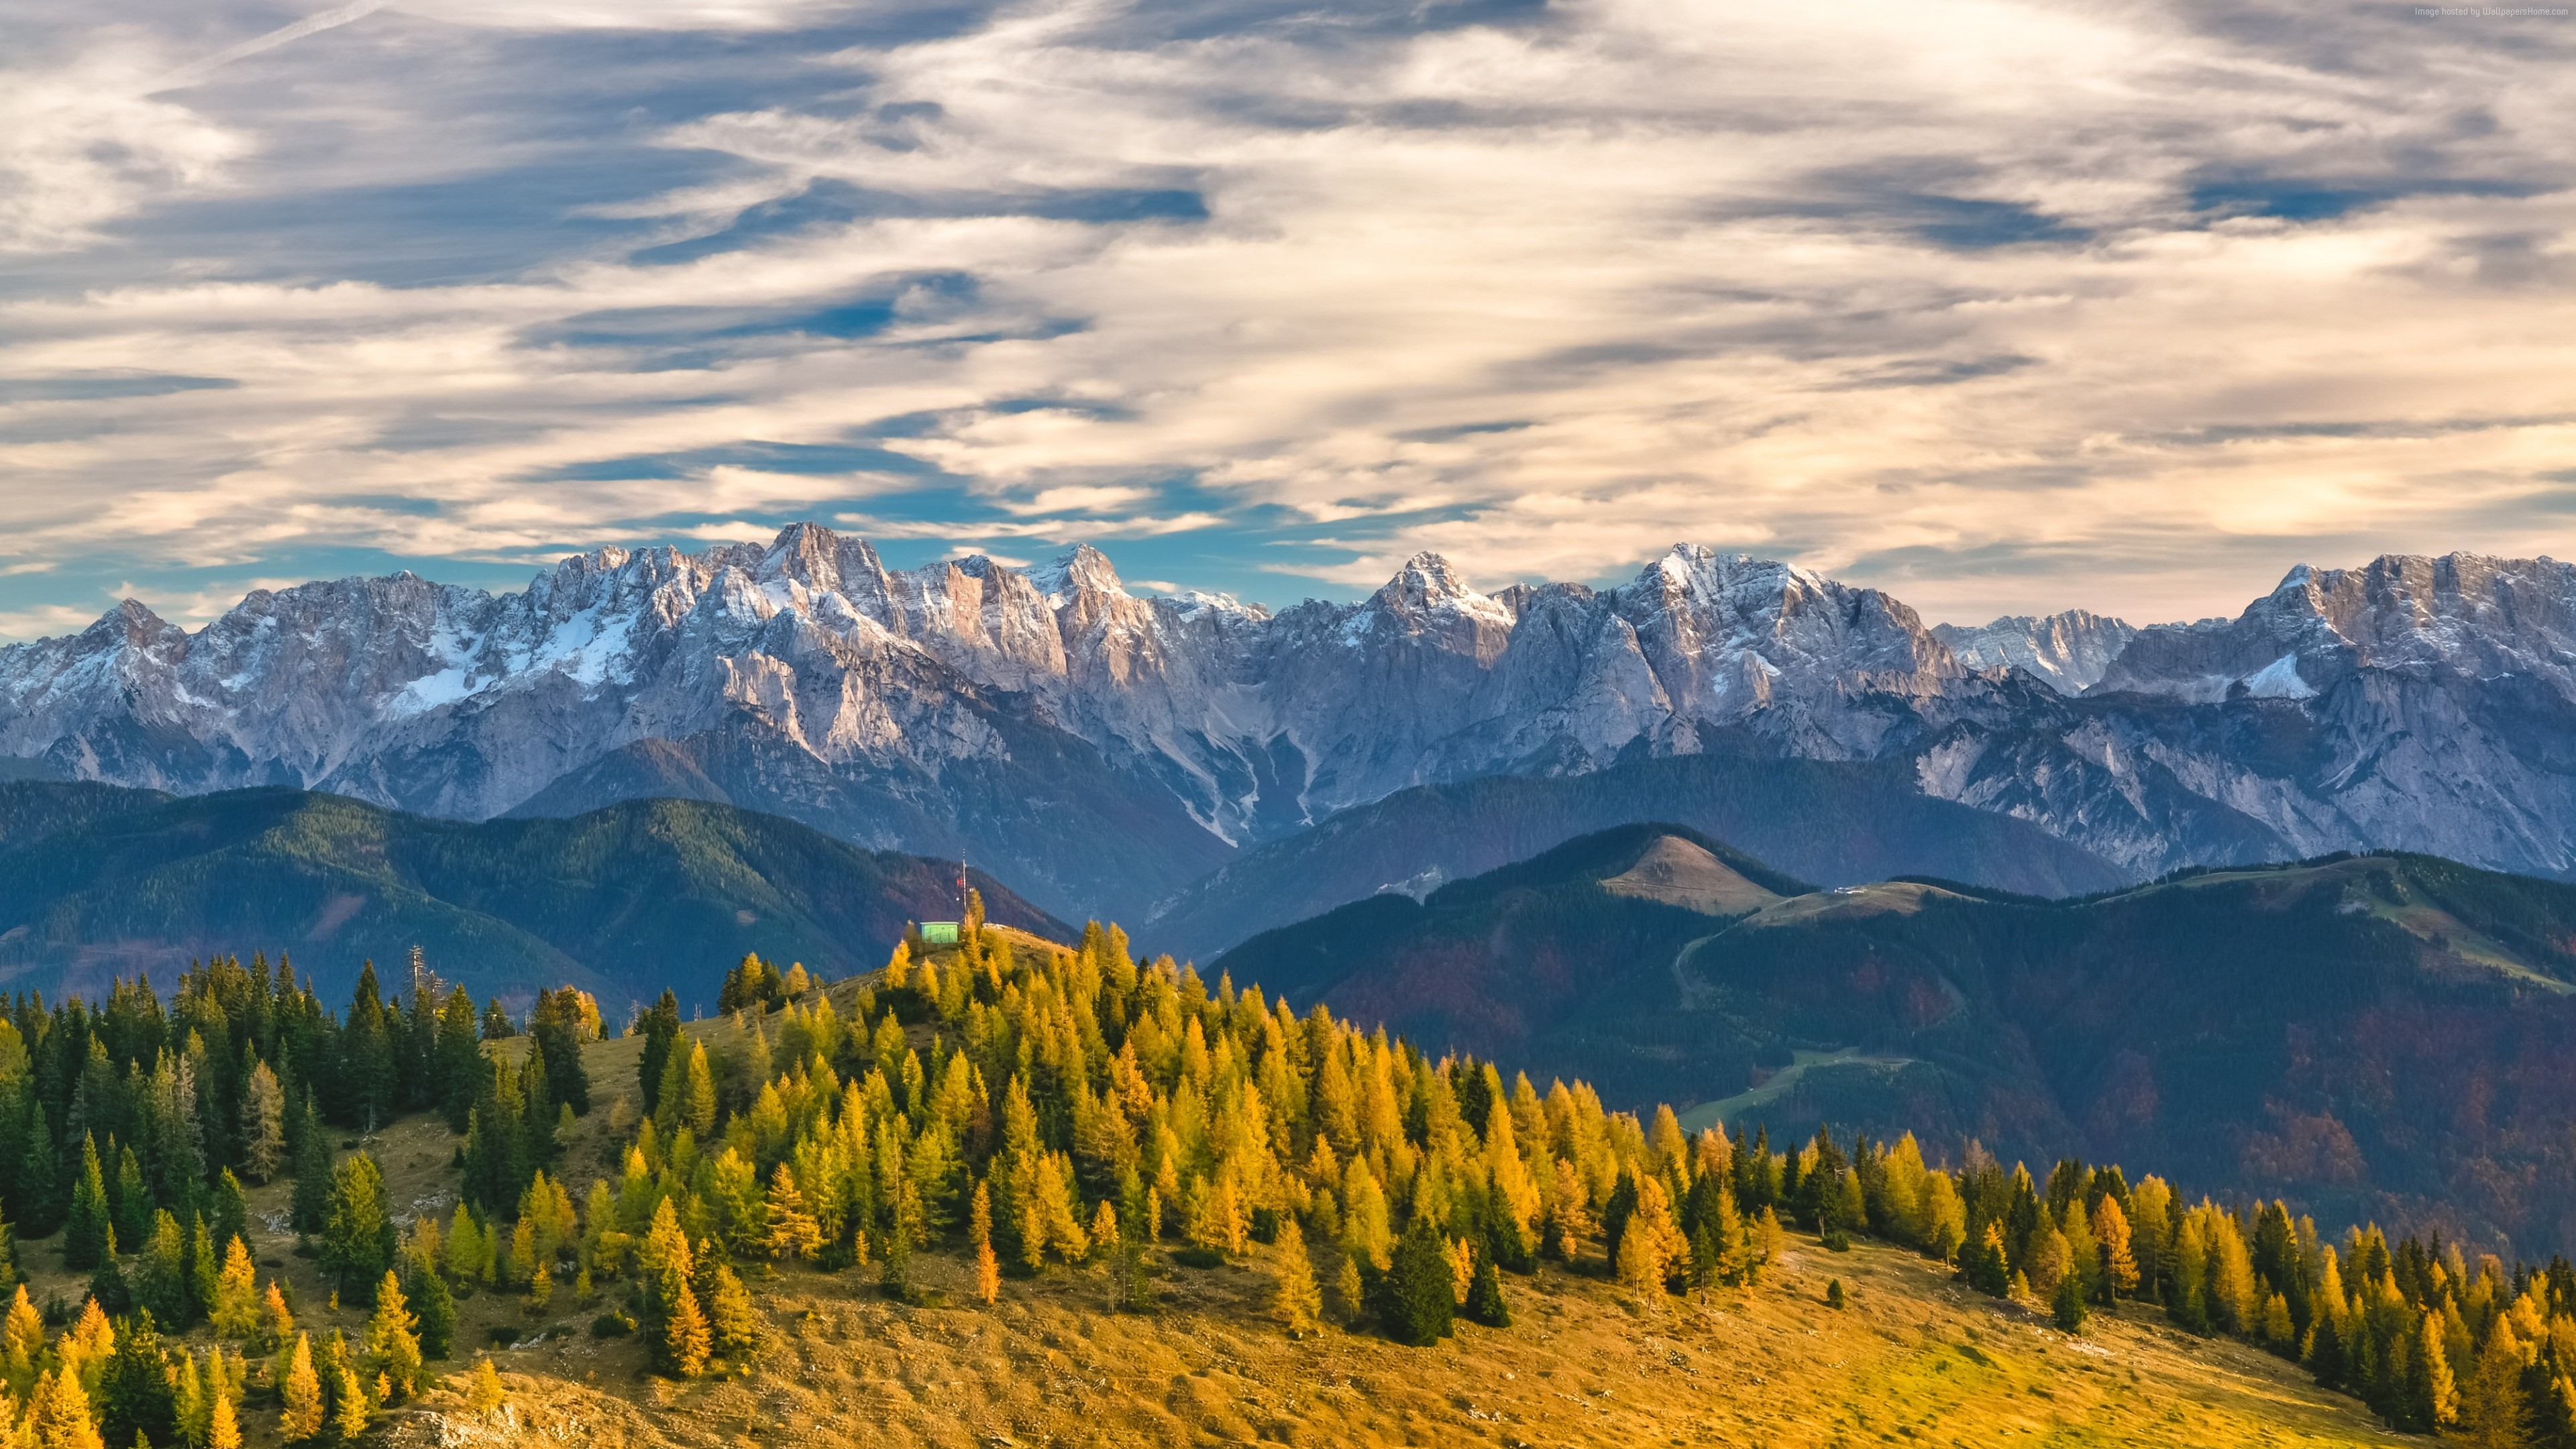 Stock Images Alps, Switzerland, mountains, trees, 4k, Stock Images